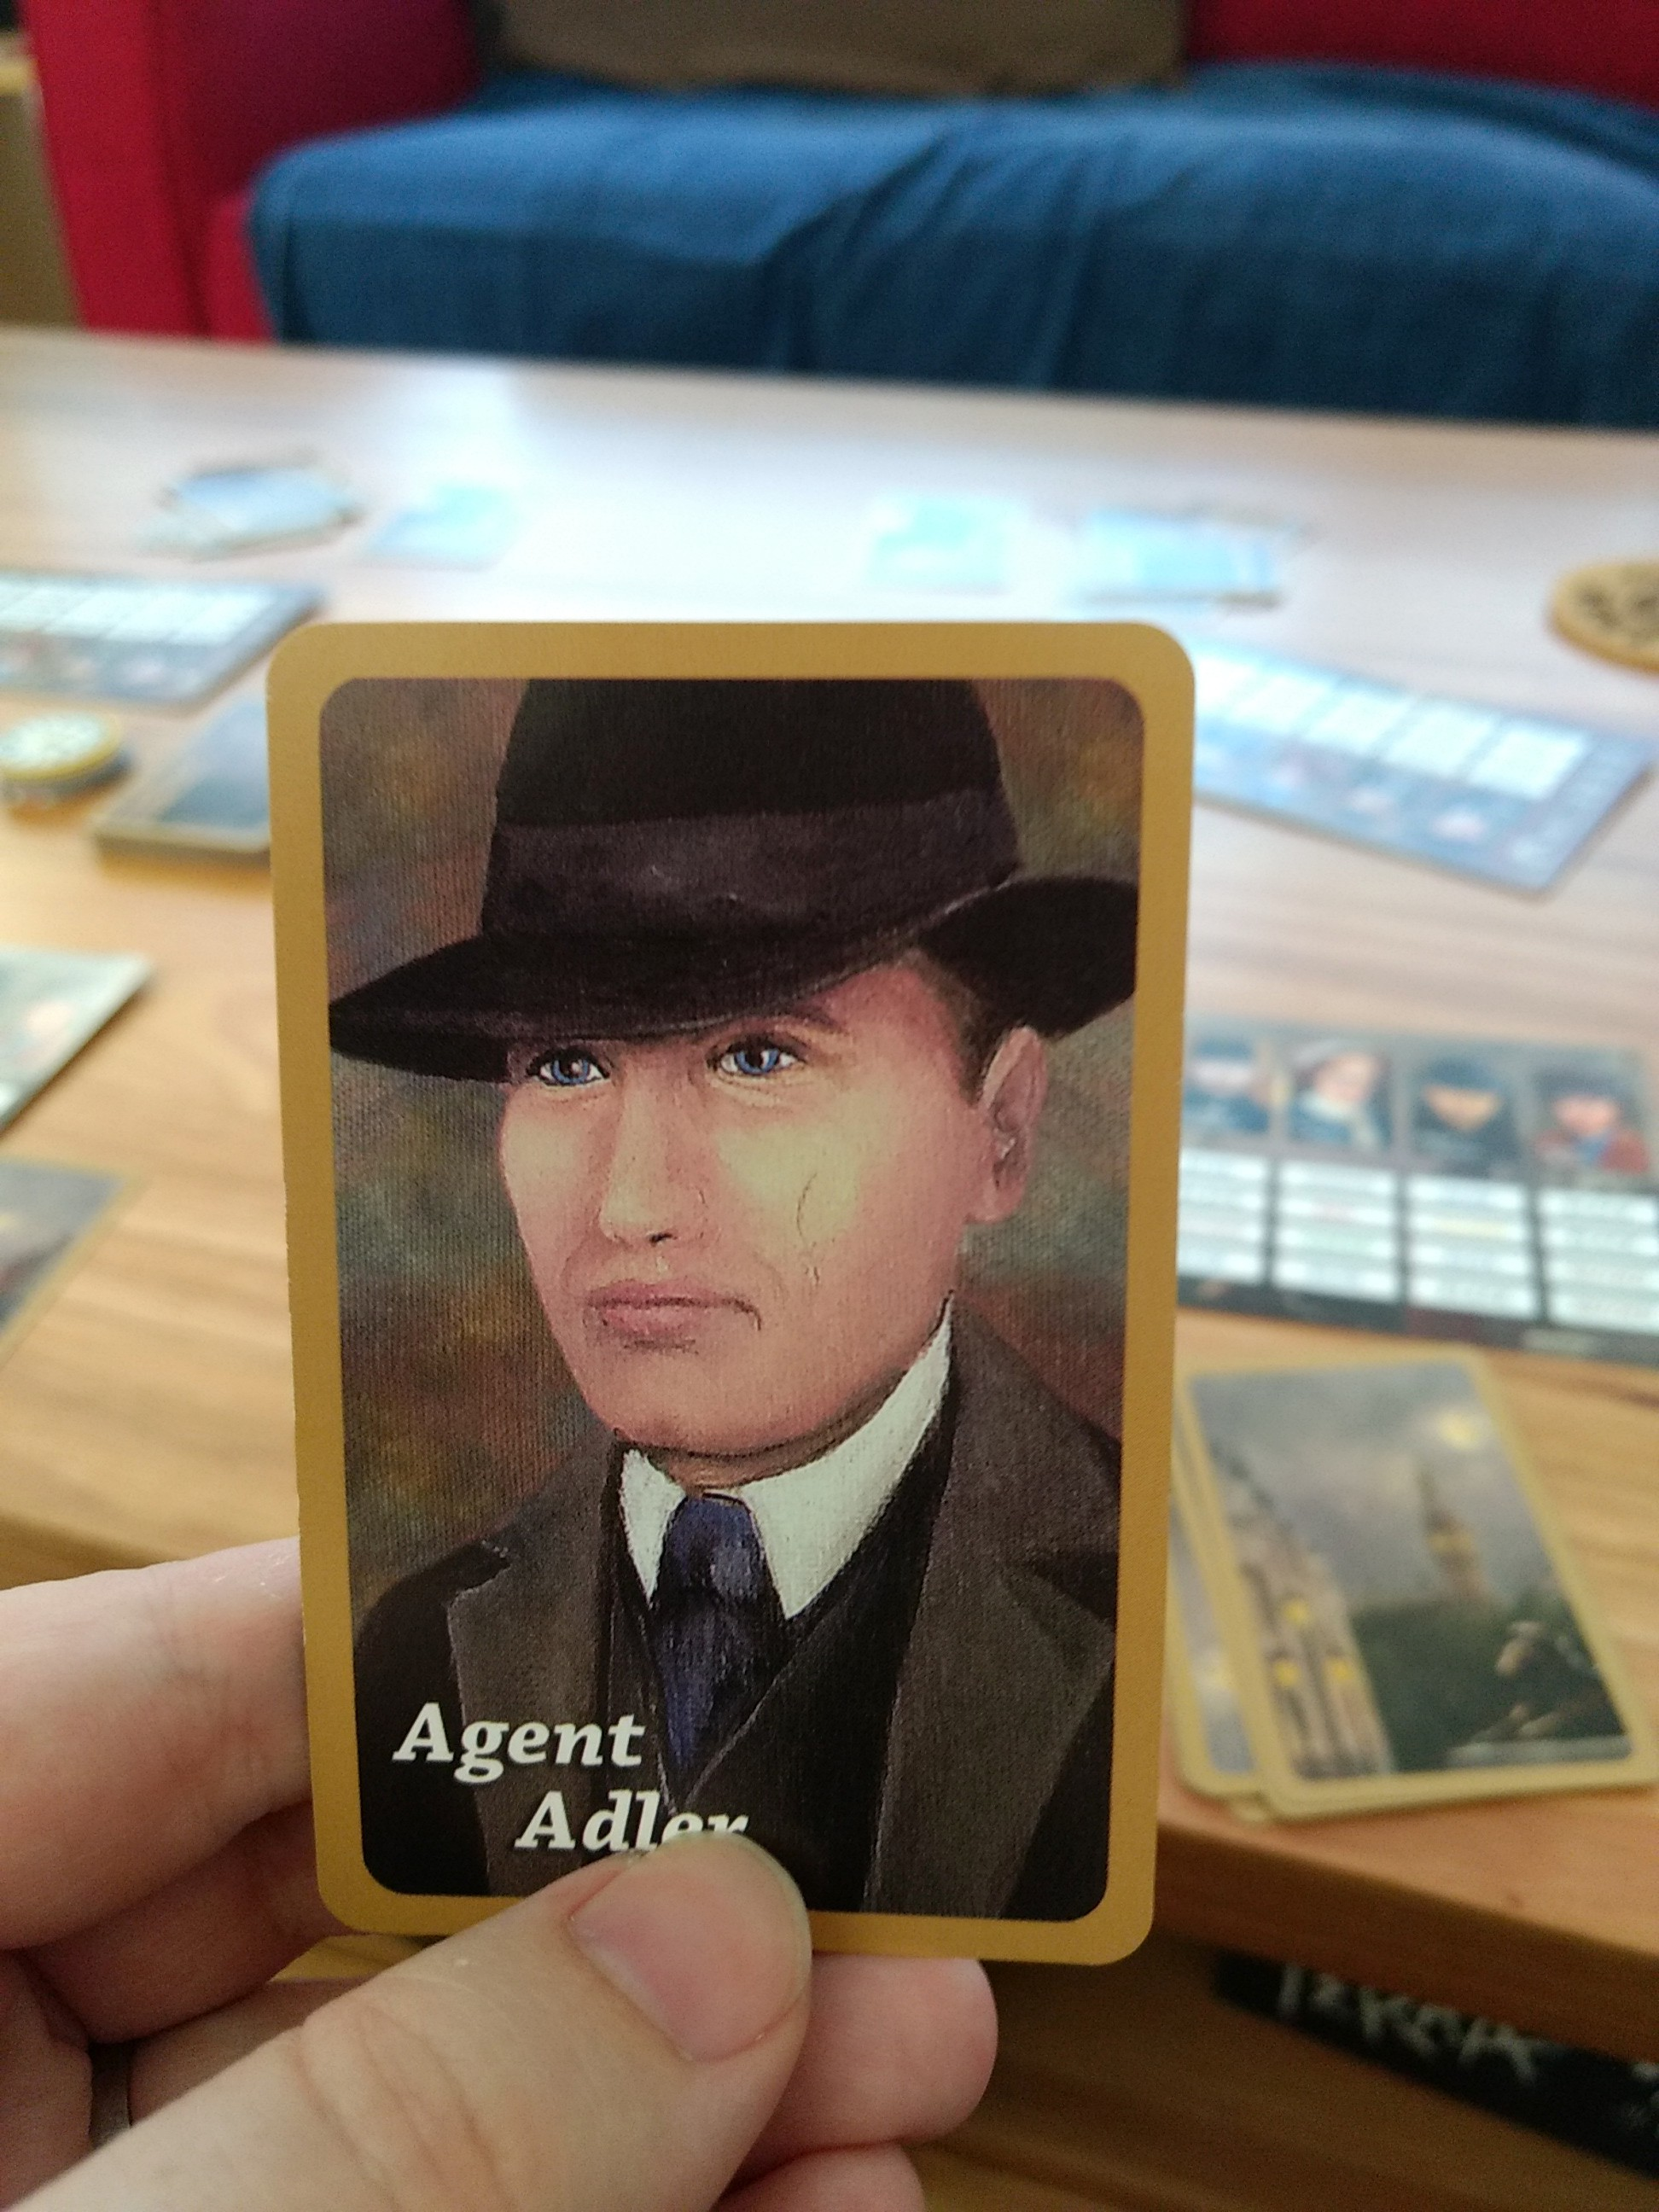 r2r-board-game-review-get-adler-adler